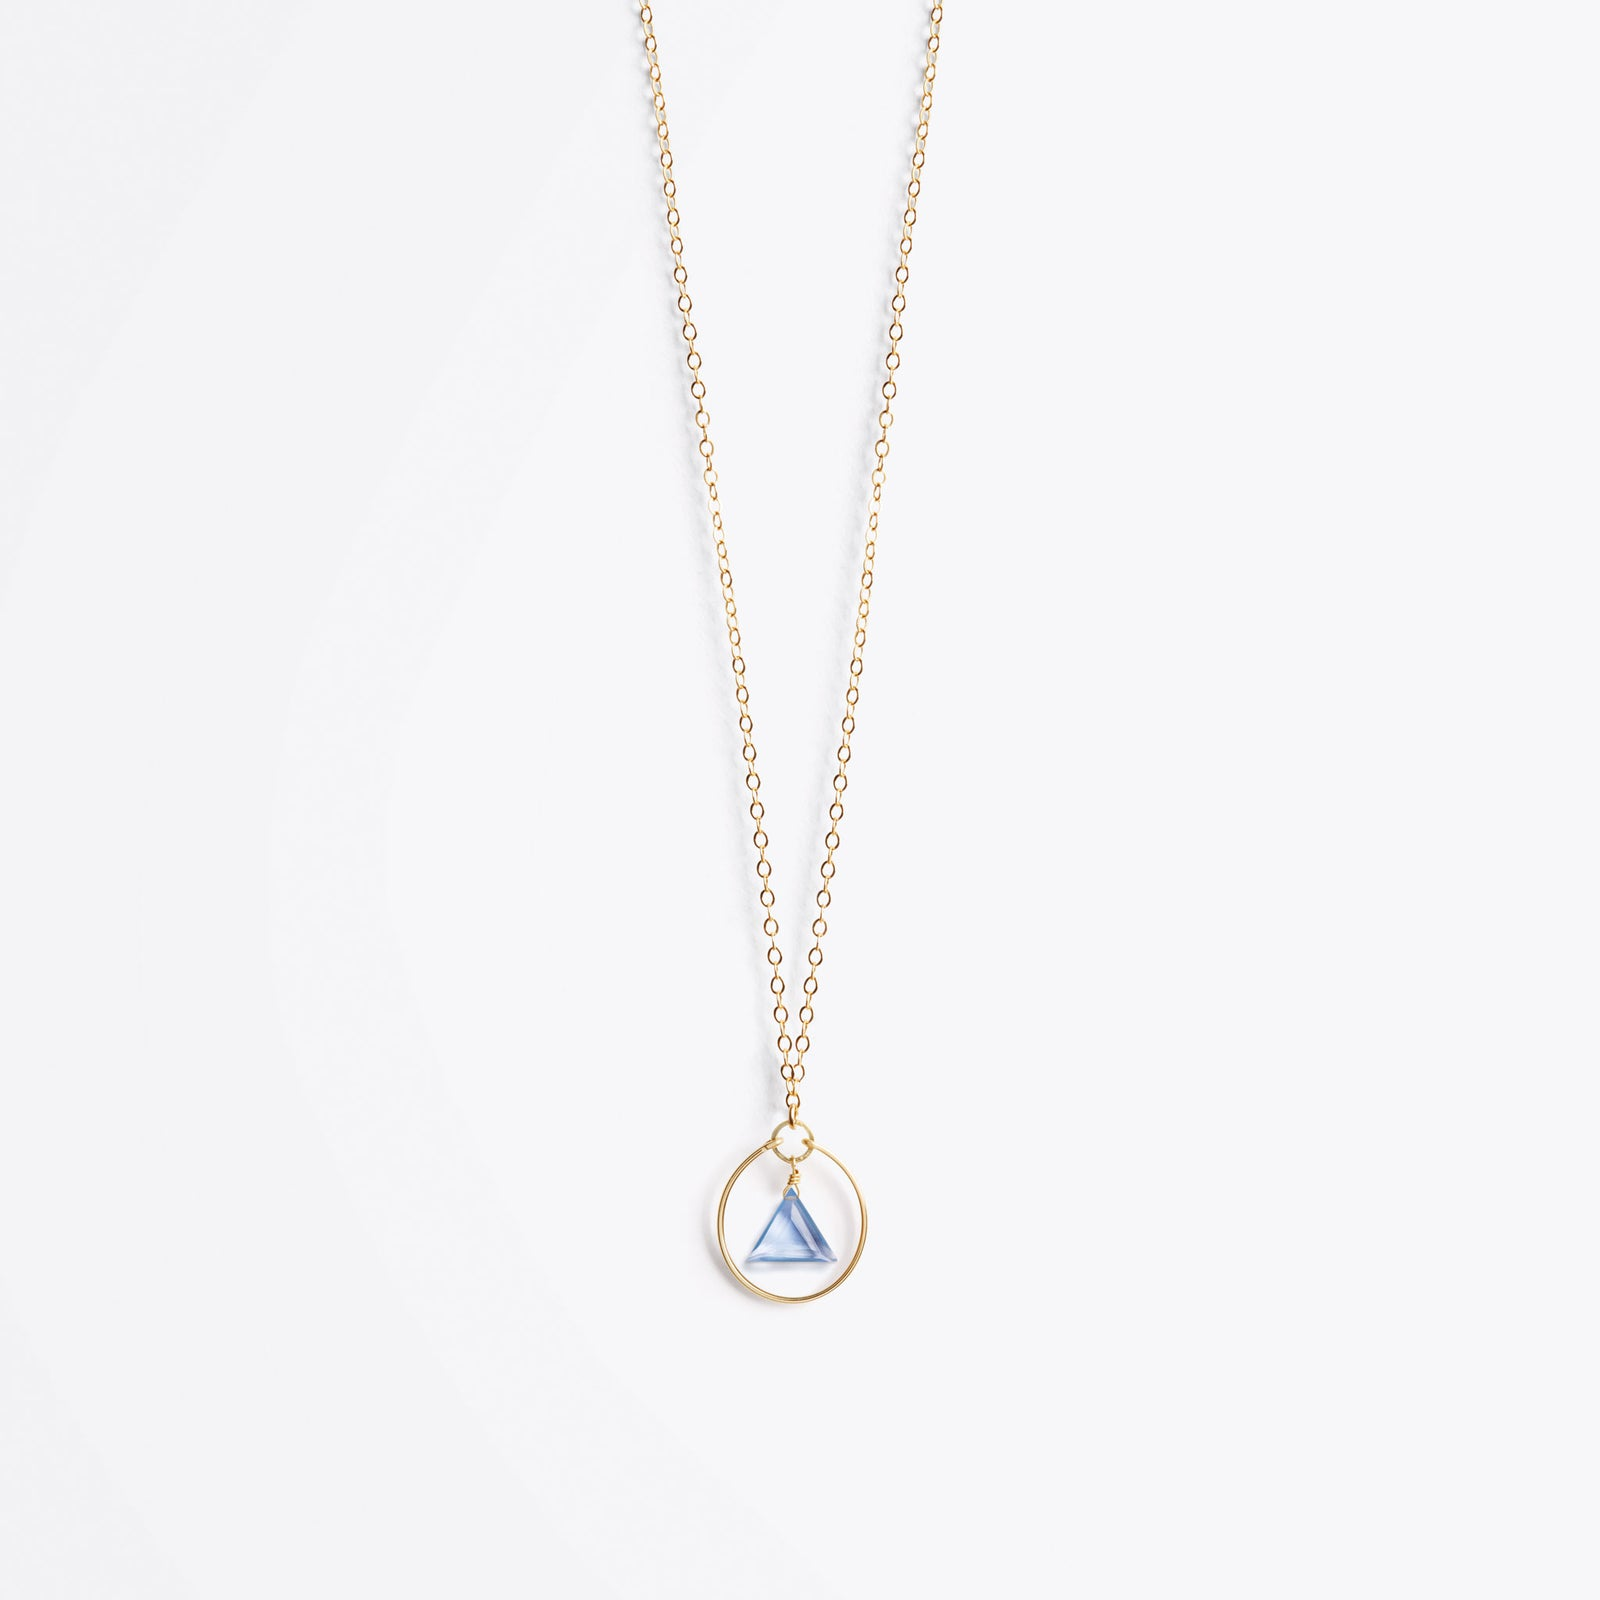 Wanderlust Life Ethically Handmade jewellery made in the UK. Minimalist gold and fine cord jewellery. stella prism gold chain necklace, california blue quartz